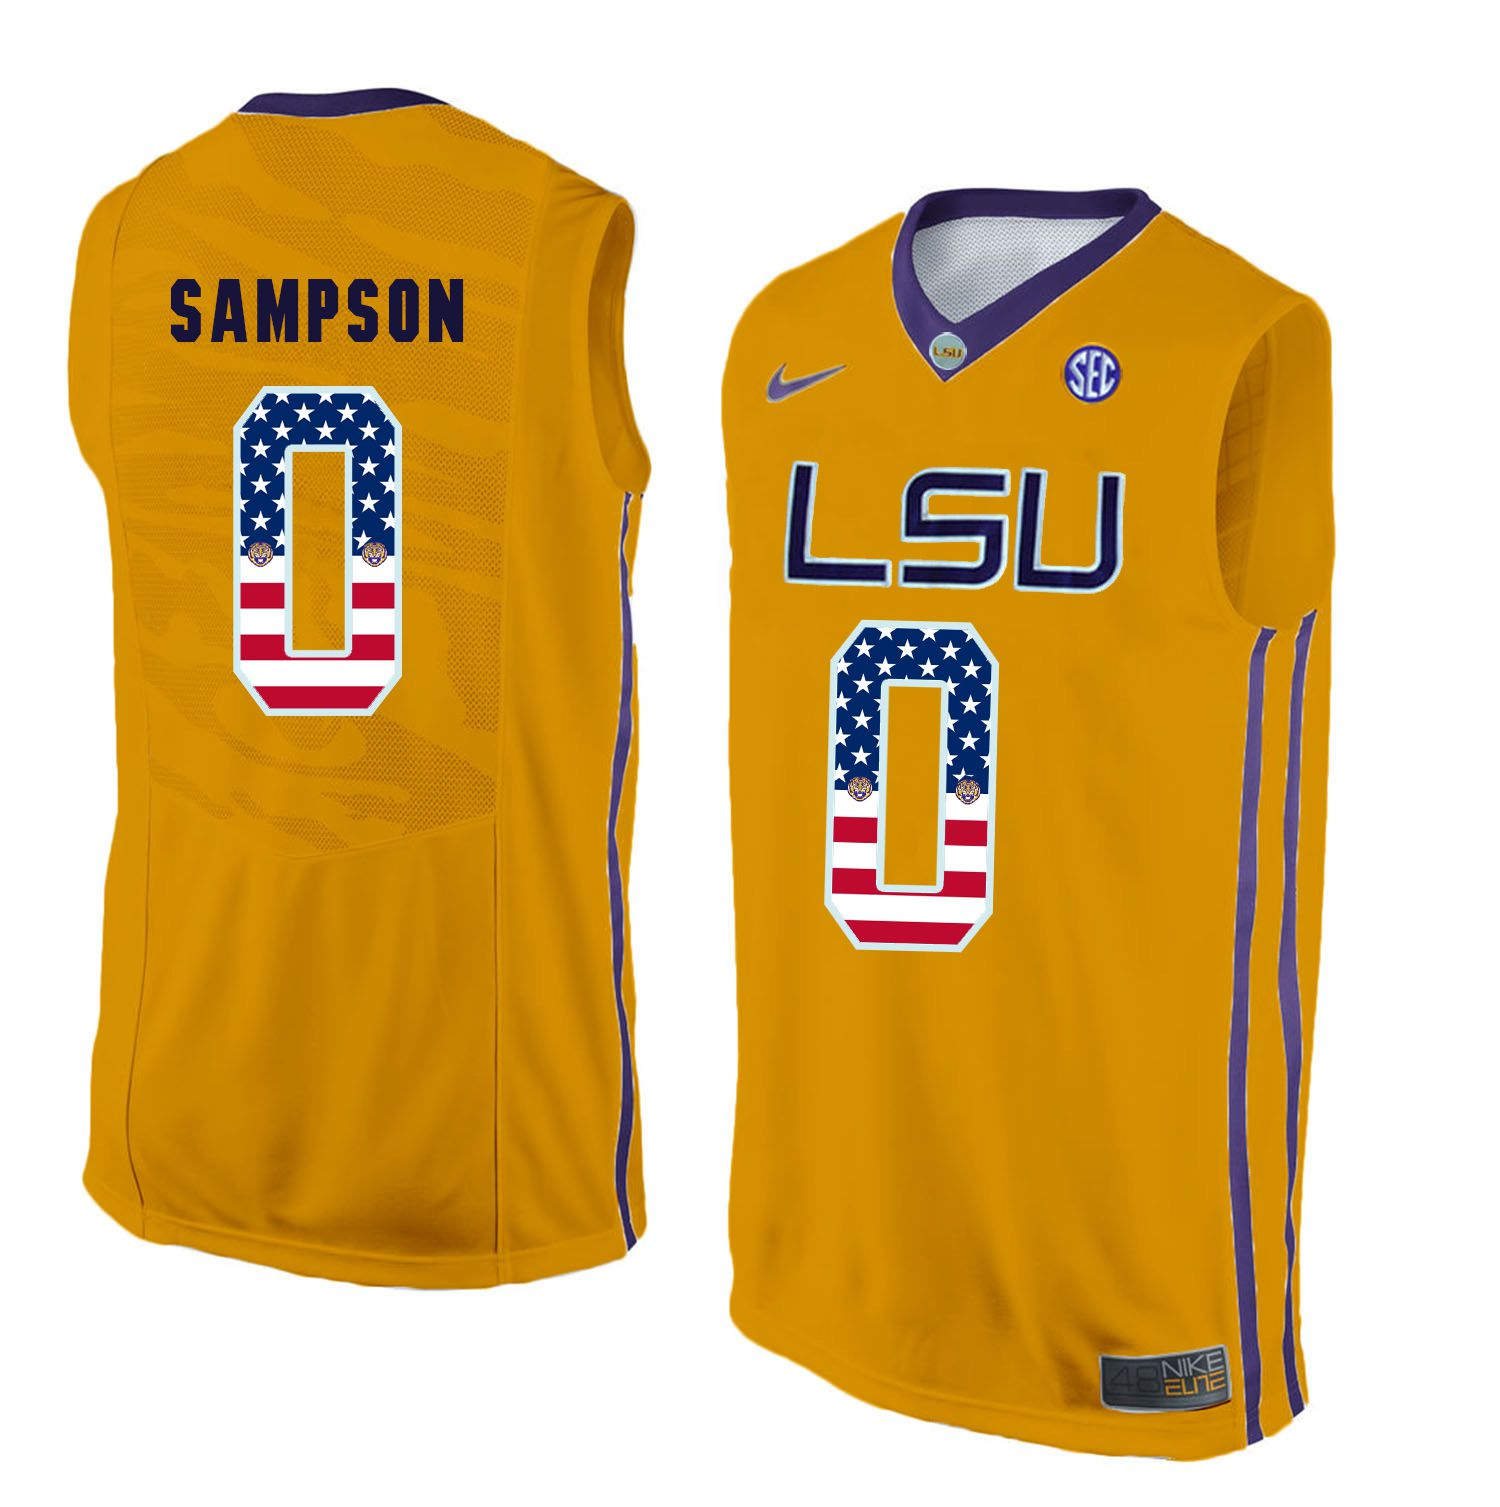 Men LSU Tigers 0 Sampson Yellow Flag Customized NCAA Jerseys